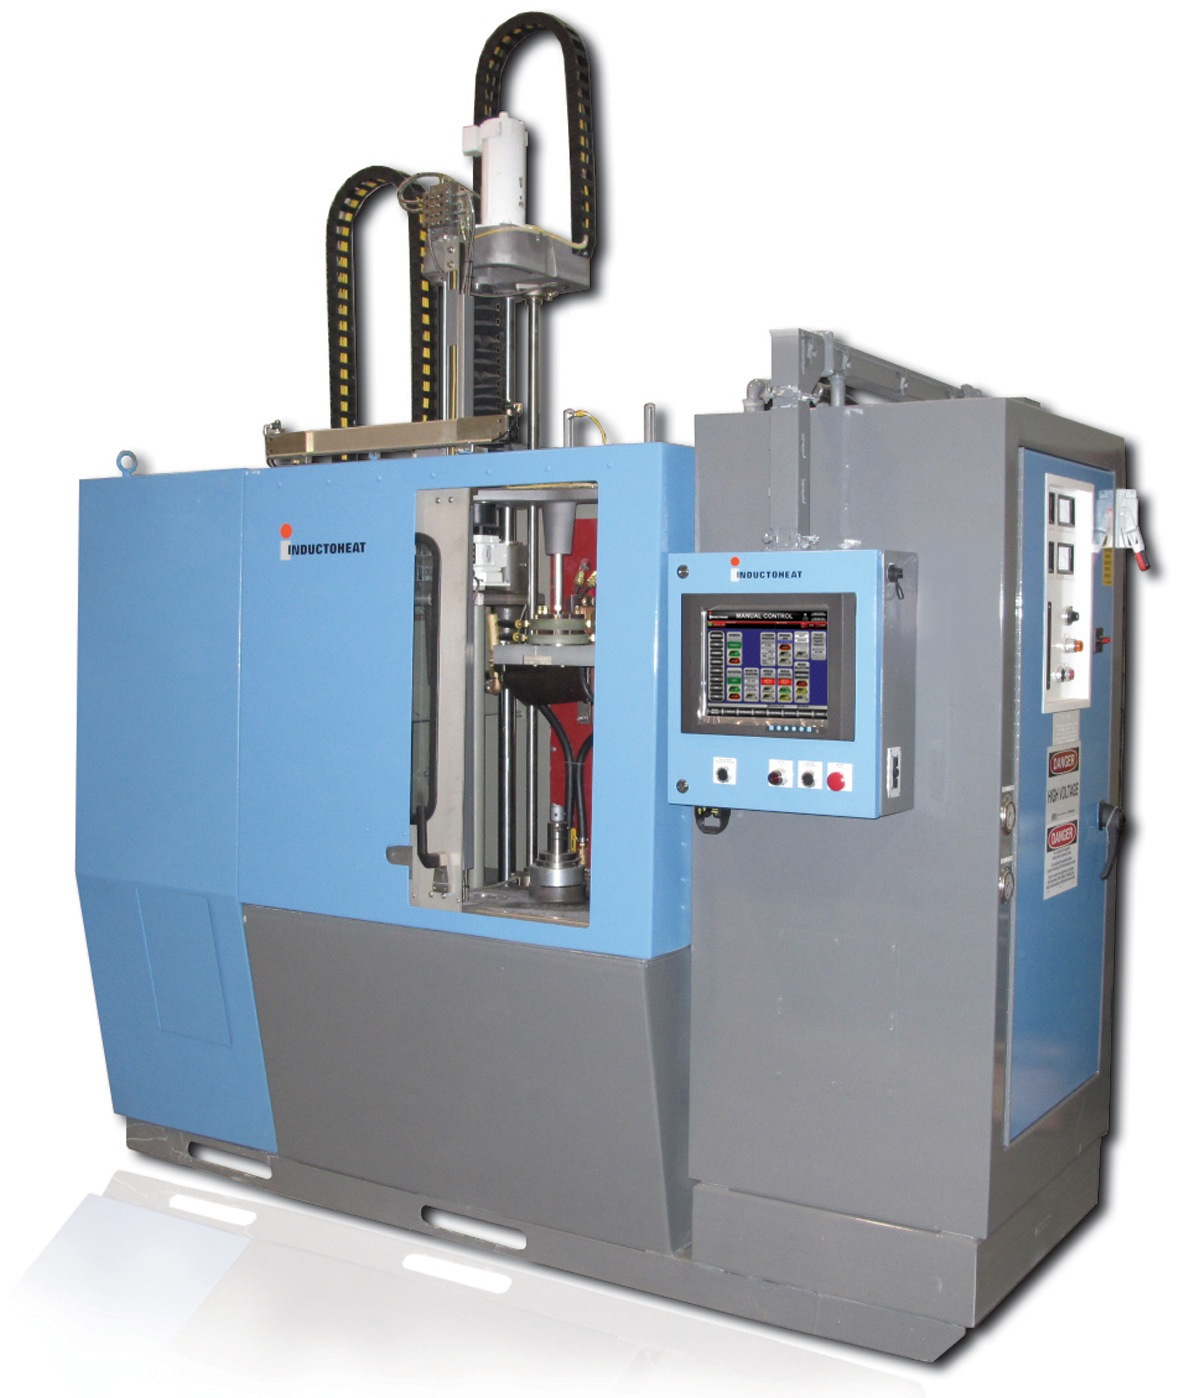 Inductoscan Induction Heat Treating Scanning System